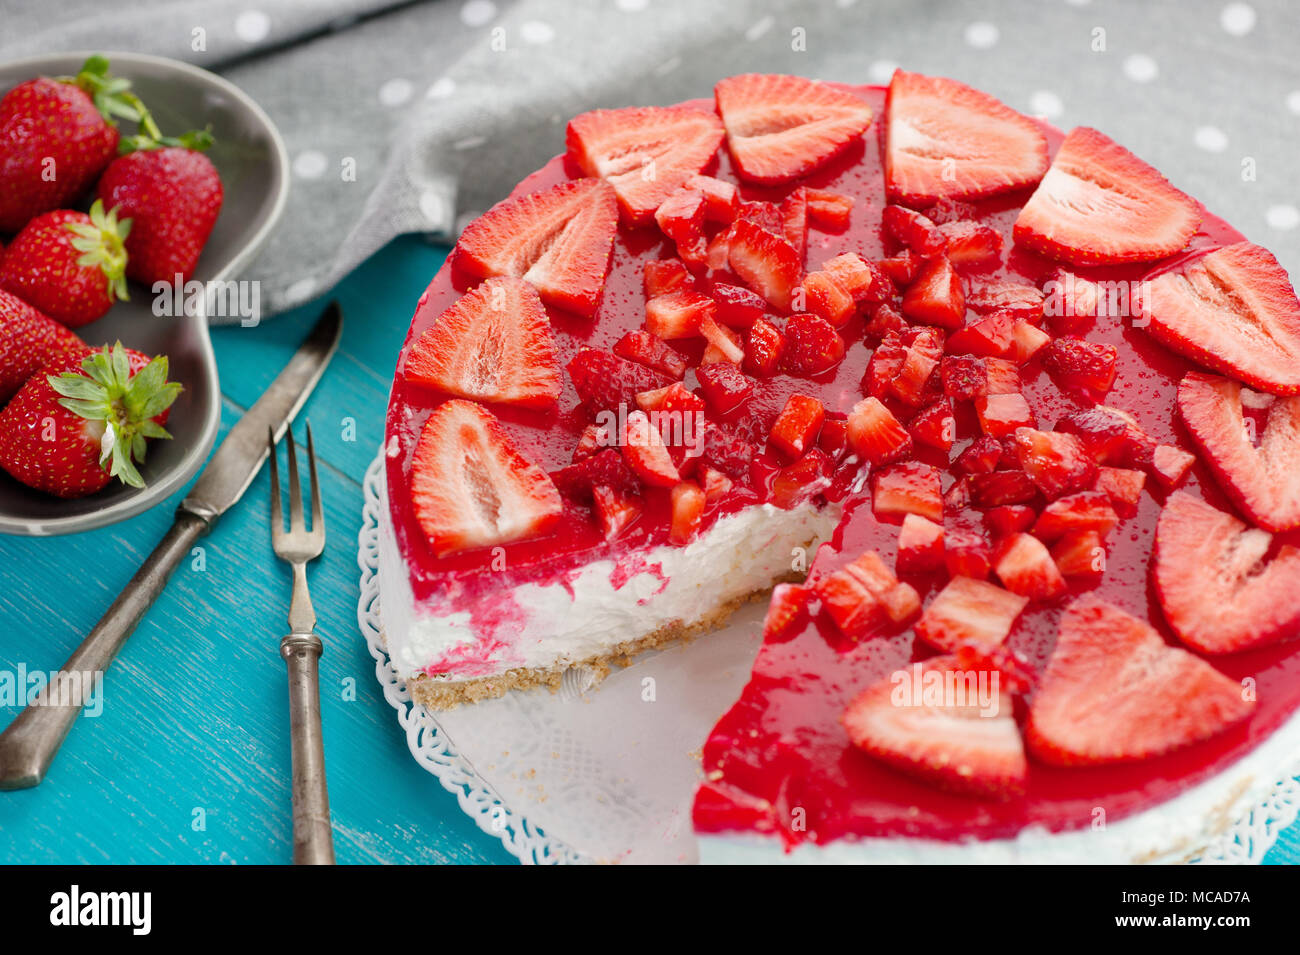 Dessert cake made with strawberry delicious red fruit on blue wooden background - Stock Image